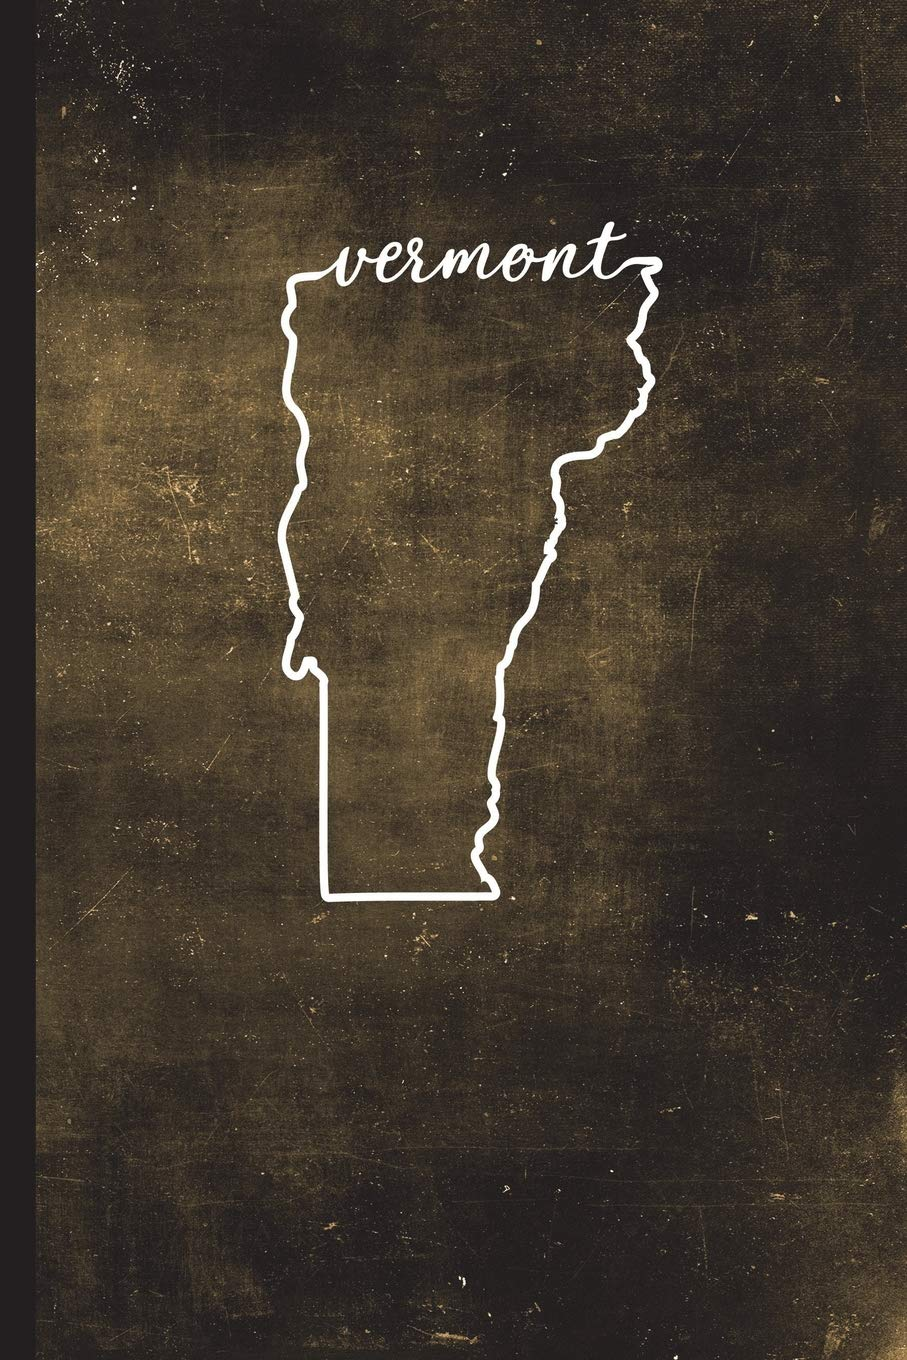 "Read Online Vermont: 6"" x 9""  128 Pages: Alaska State Silhouette Hand Lettering Cursive Script Design on Soft Matte Cover  Notebook, Diary, Composition Book for fans of the Green Mountain State in Montpelier pdf epub"